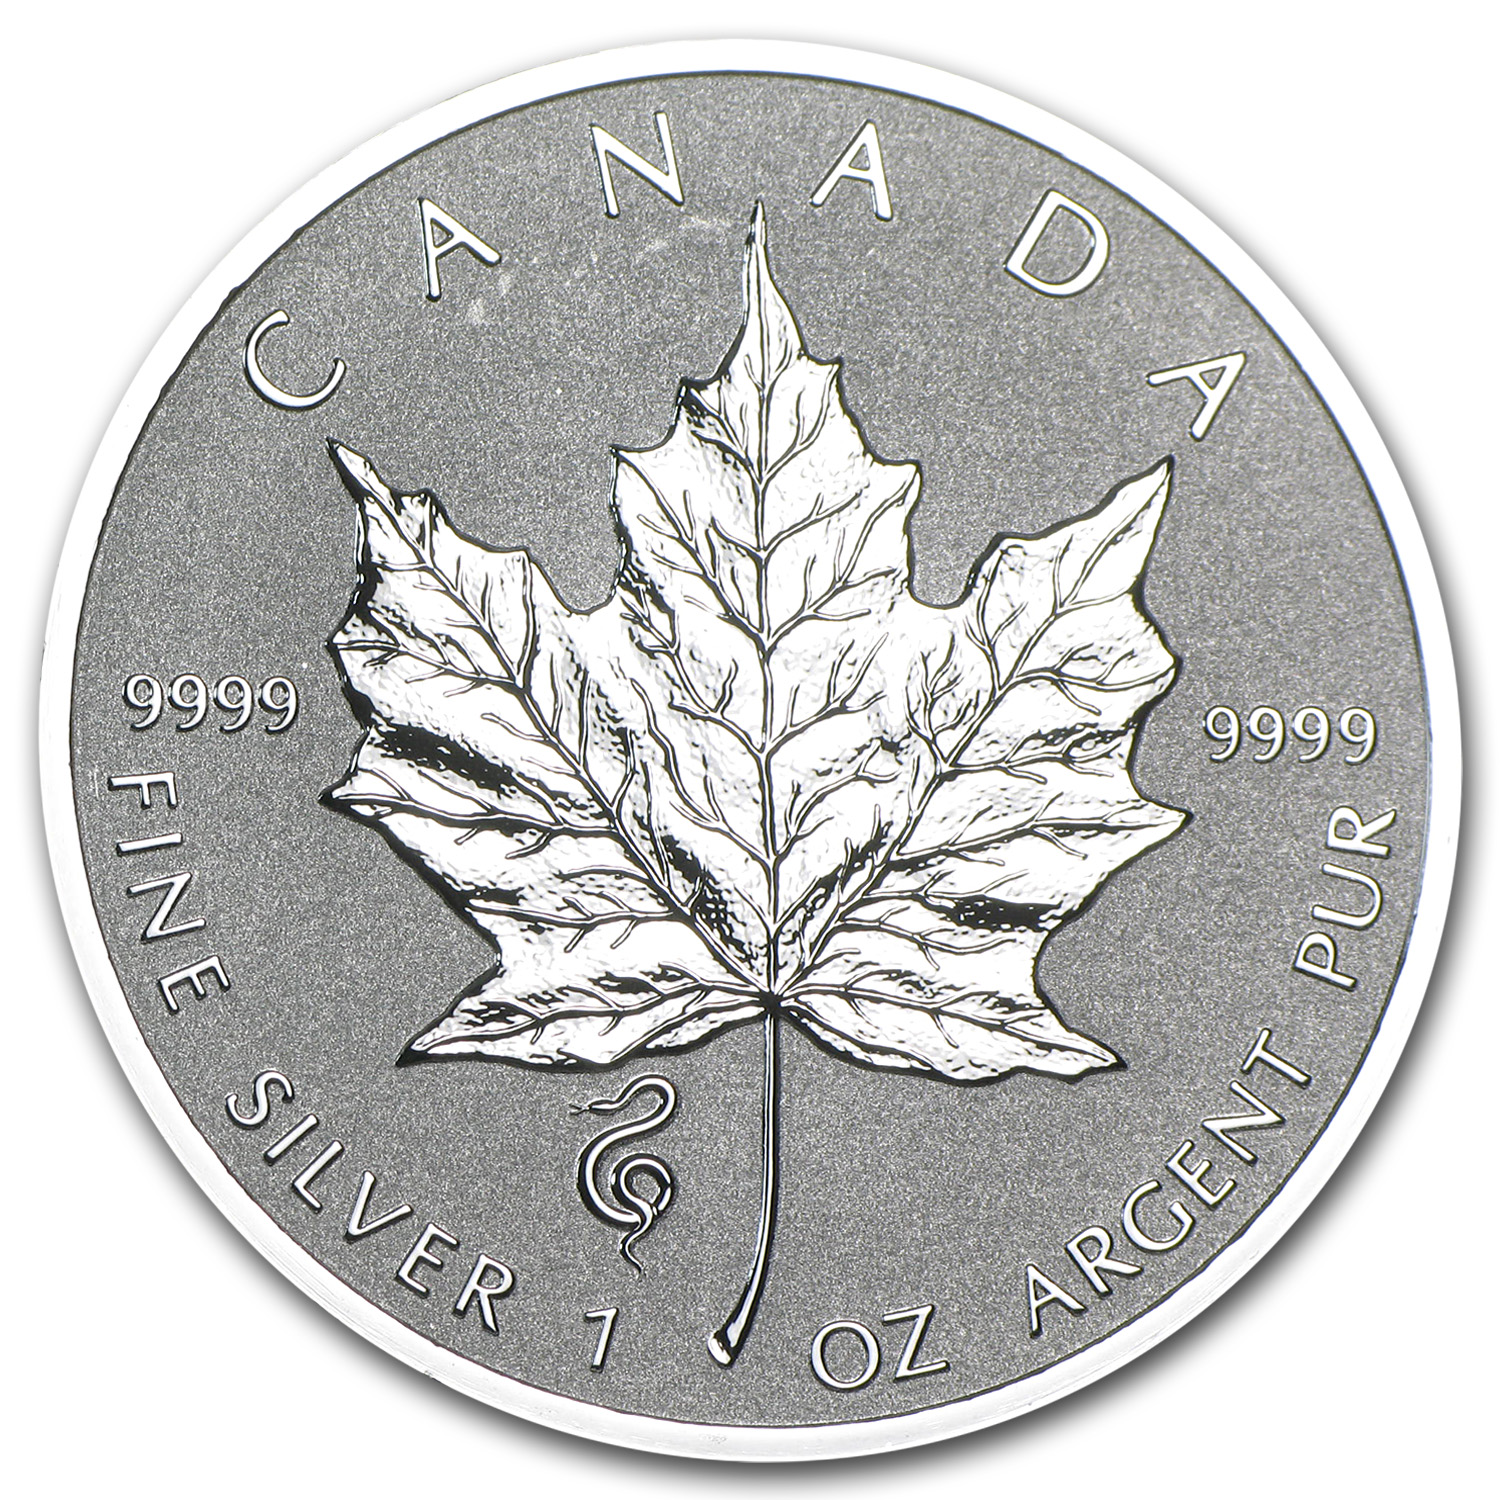 2013 Canada 1 oz Silver Maple Leaf Lunar Snake Privy